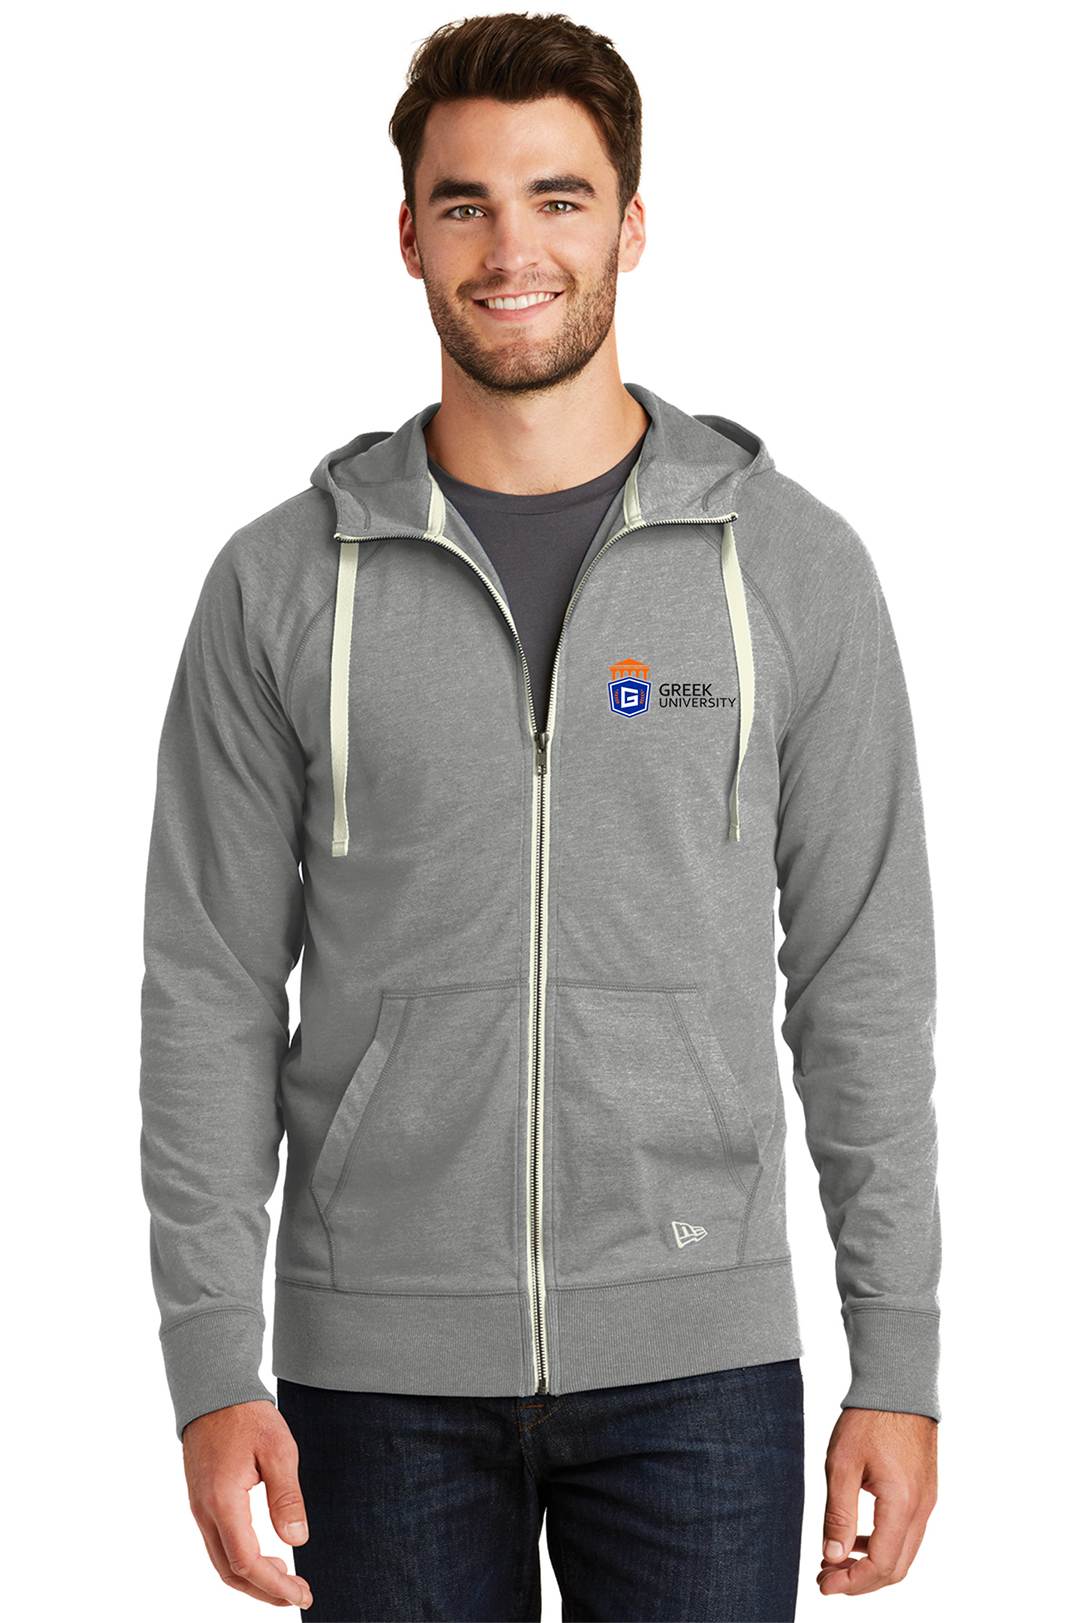 custom design of New Era NEA122 - Men's Sueded Cotton Full Zip Hoodie